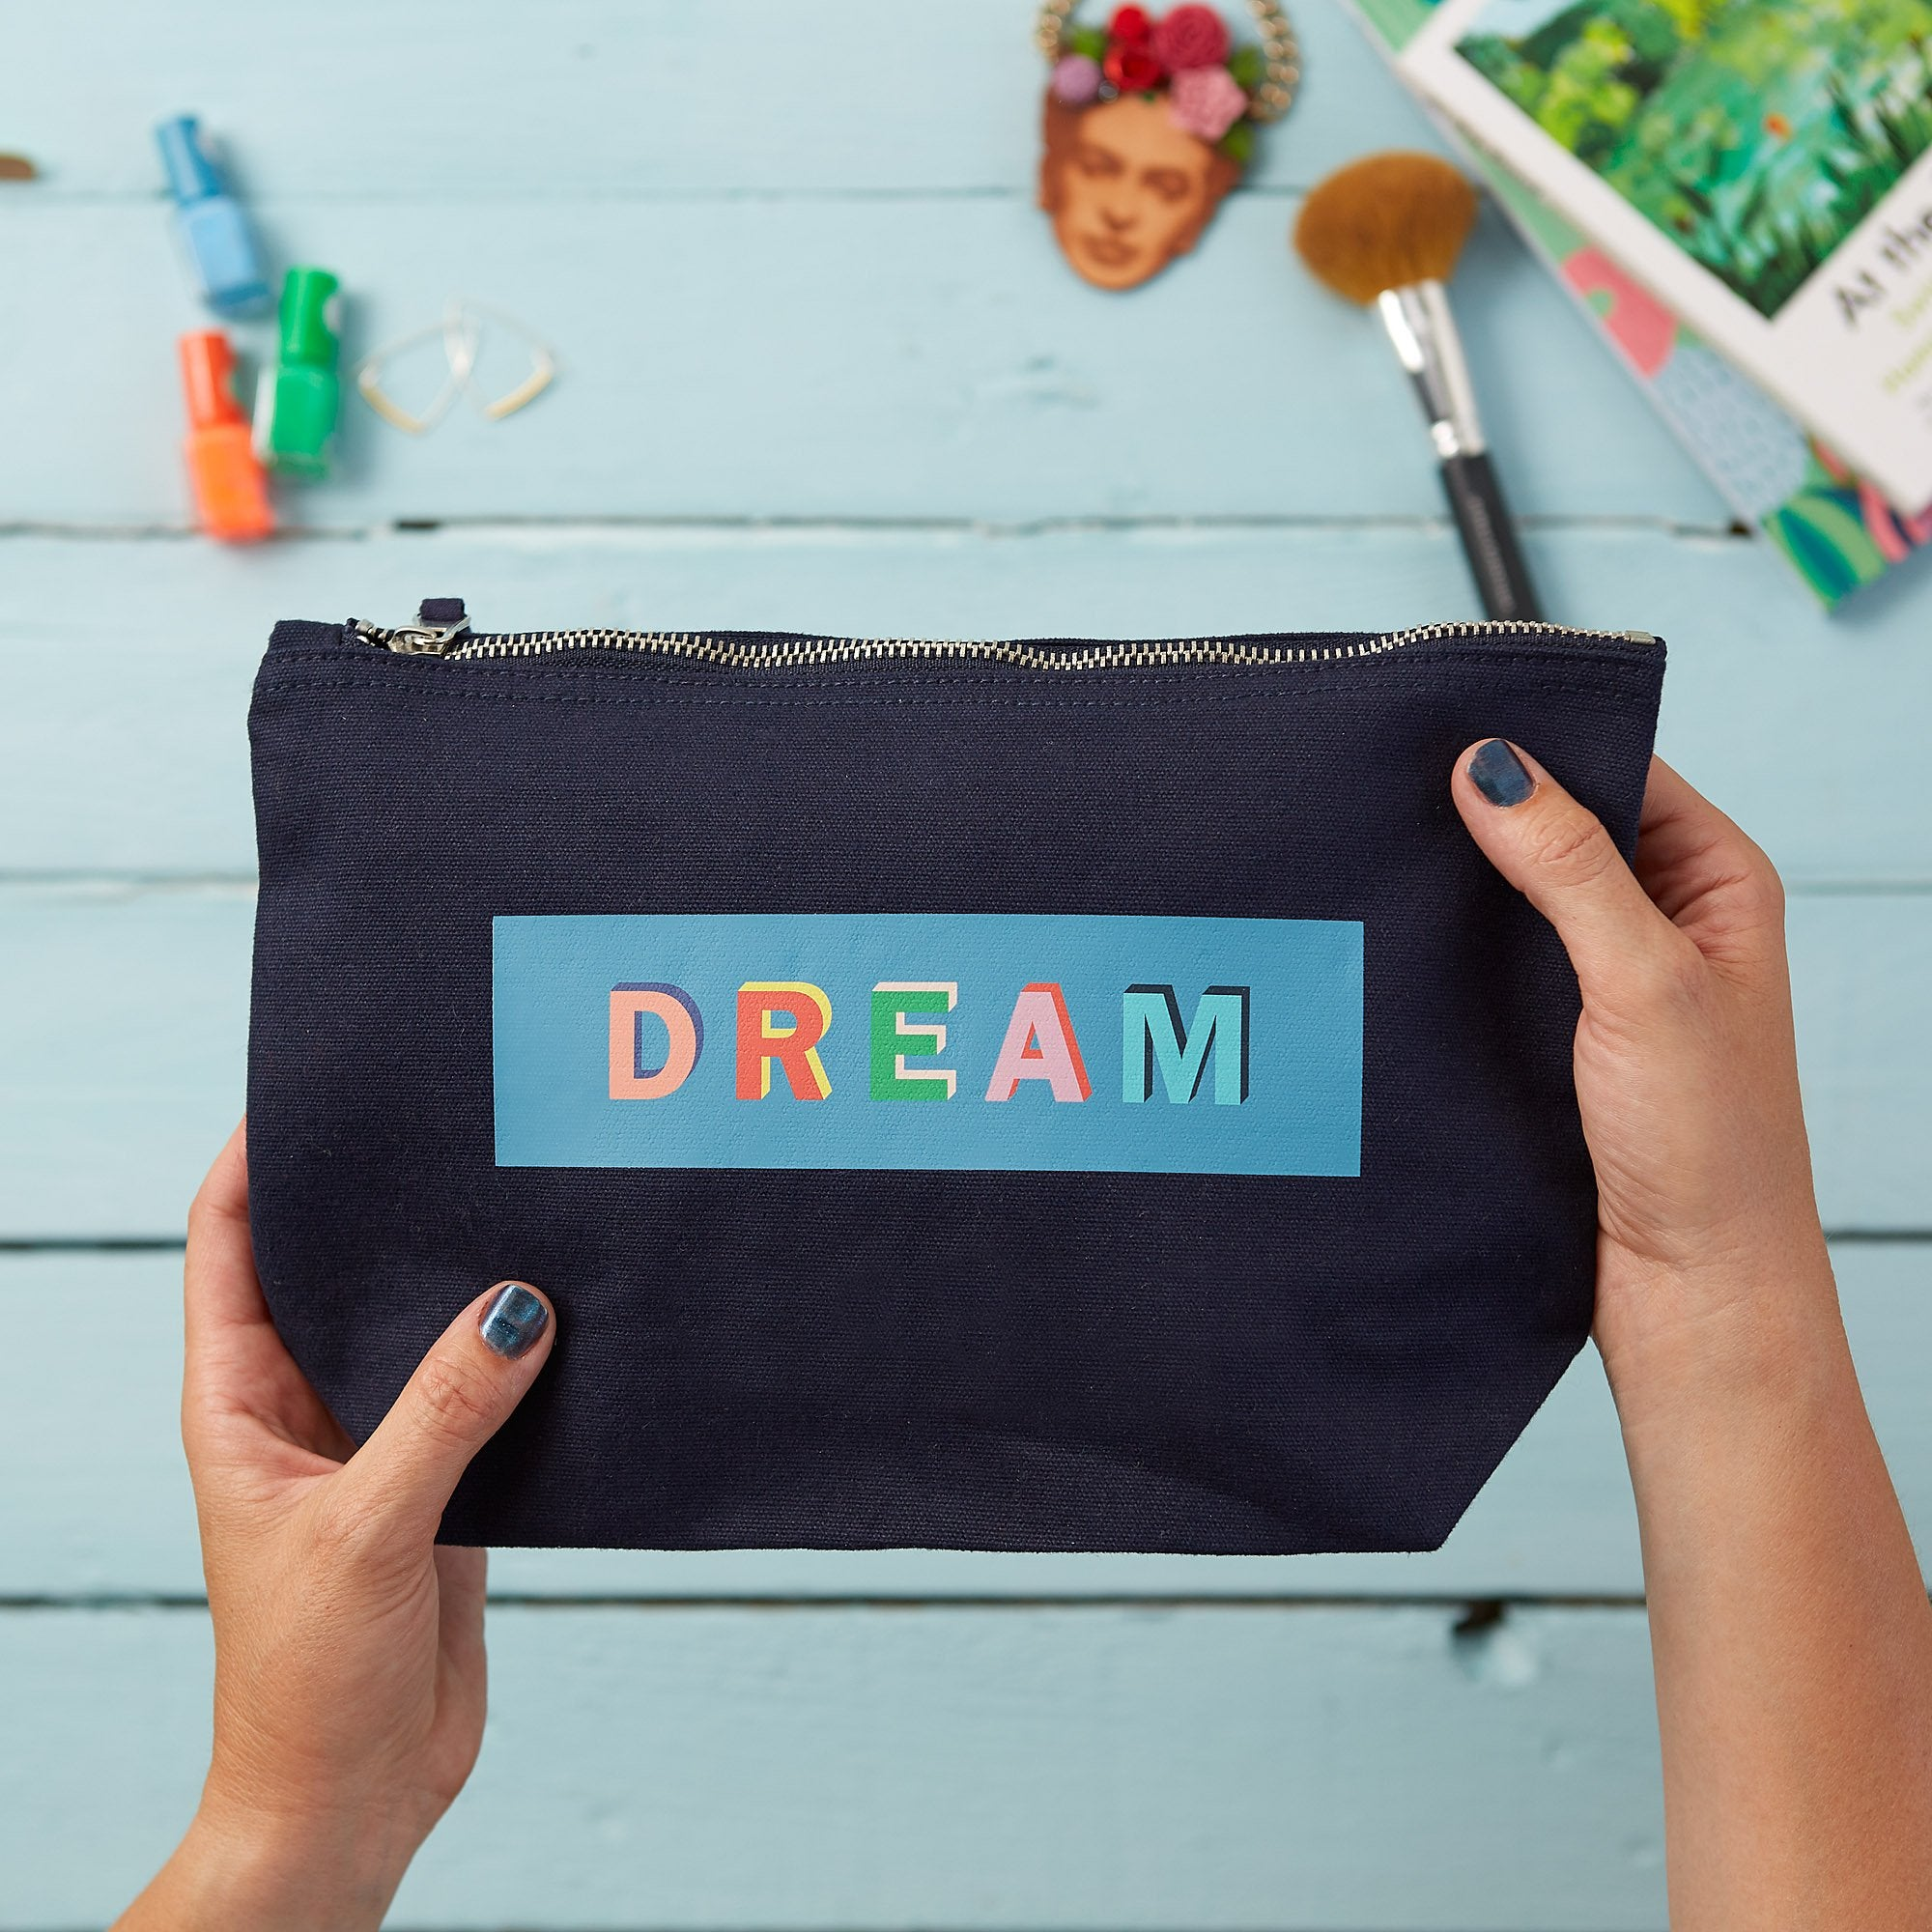 make up pouch with dream printed on it